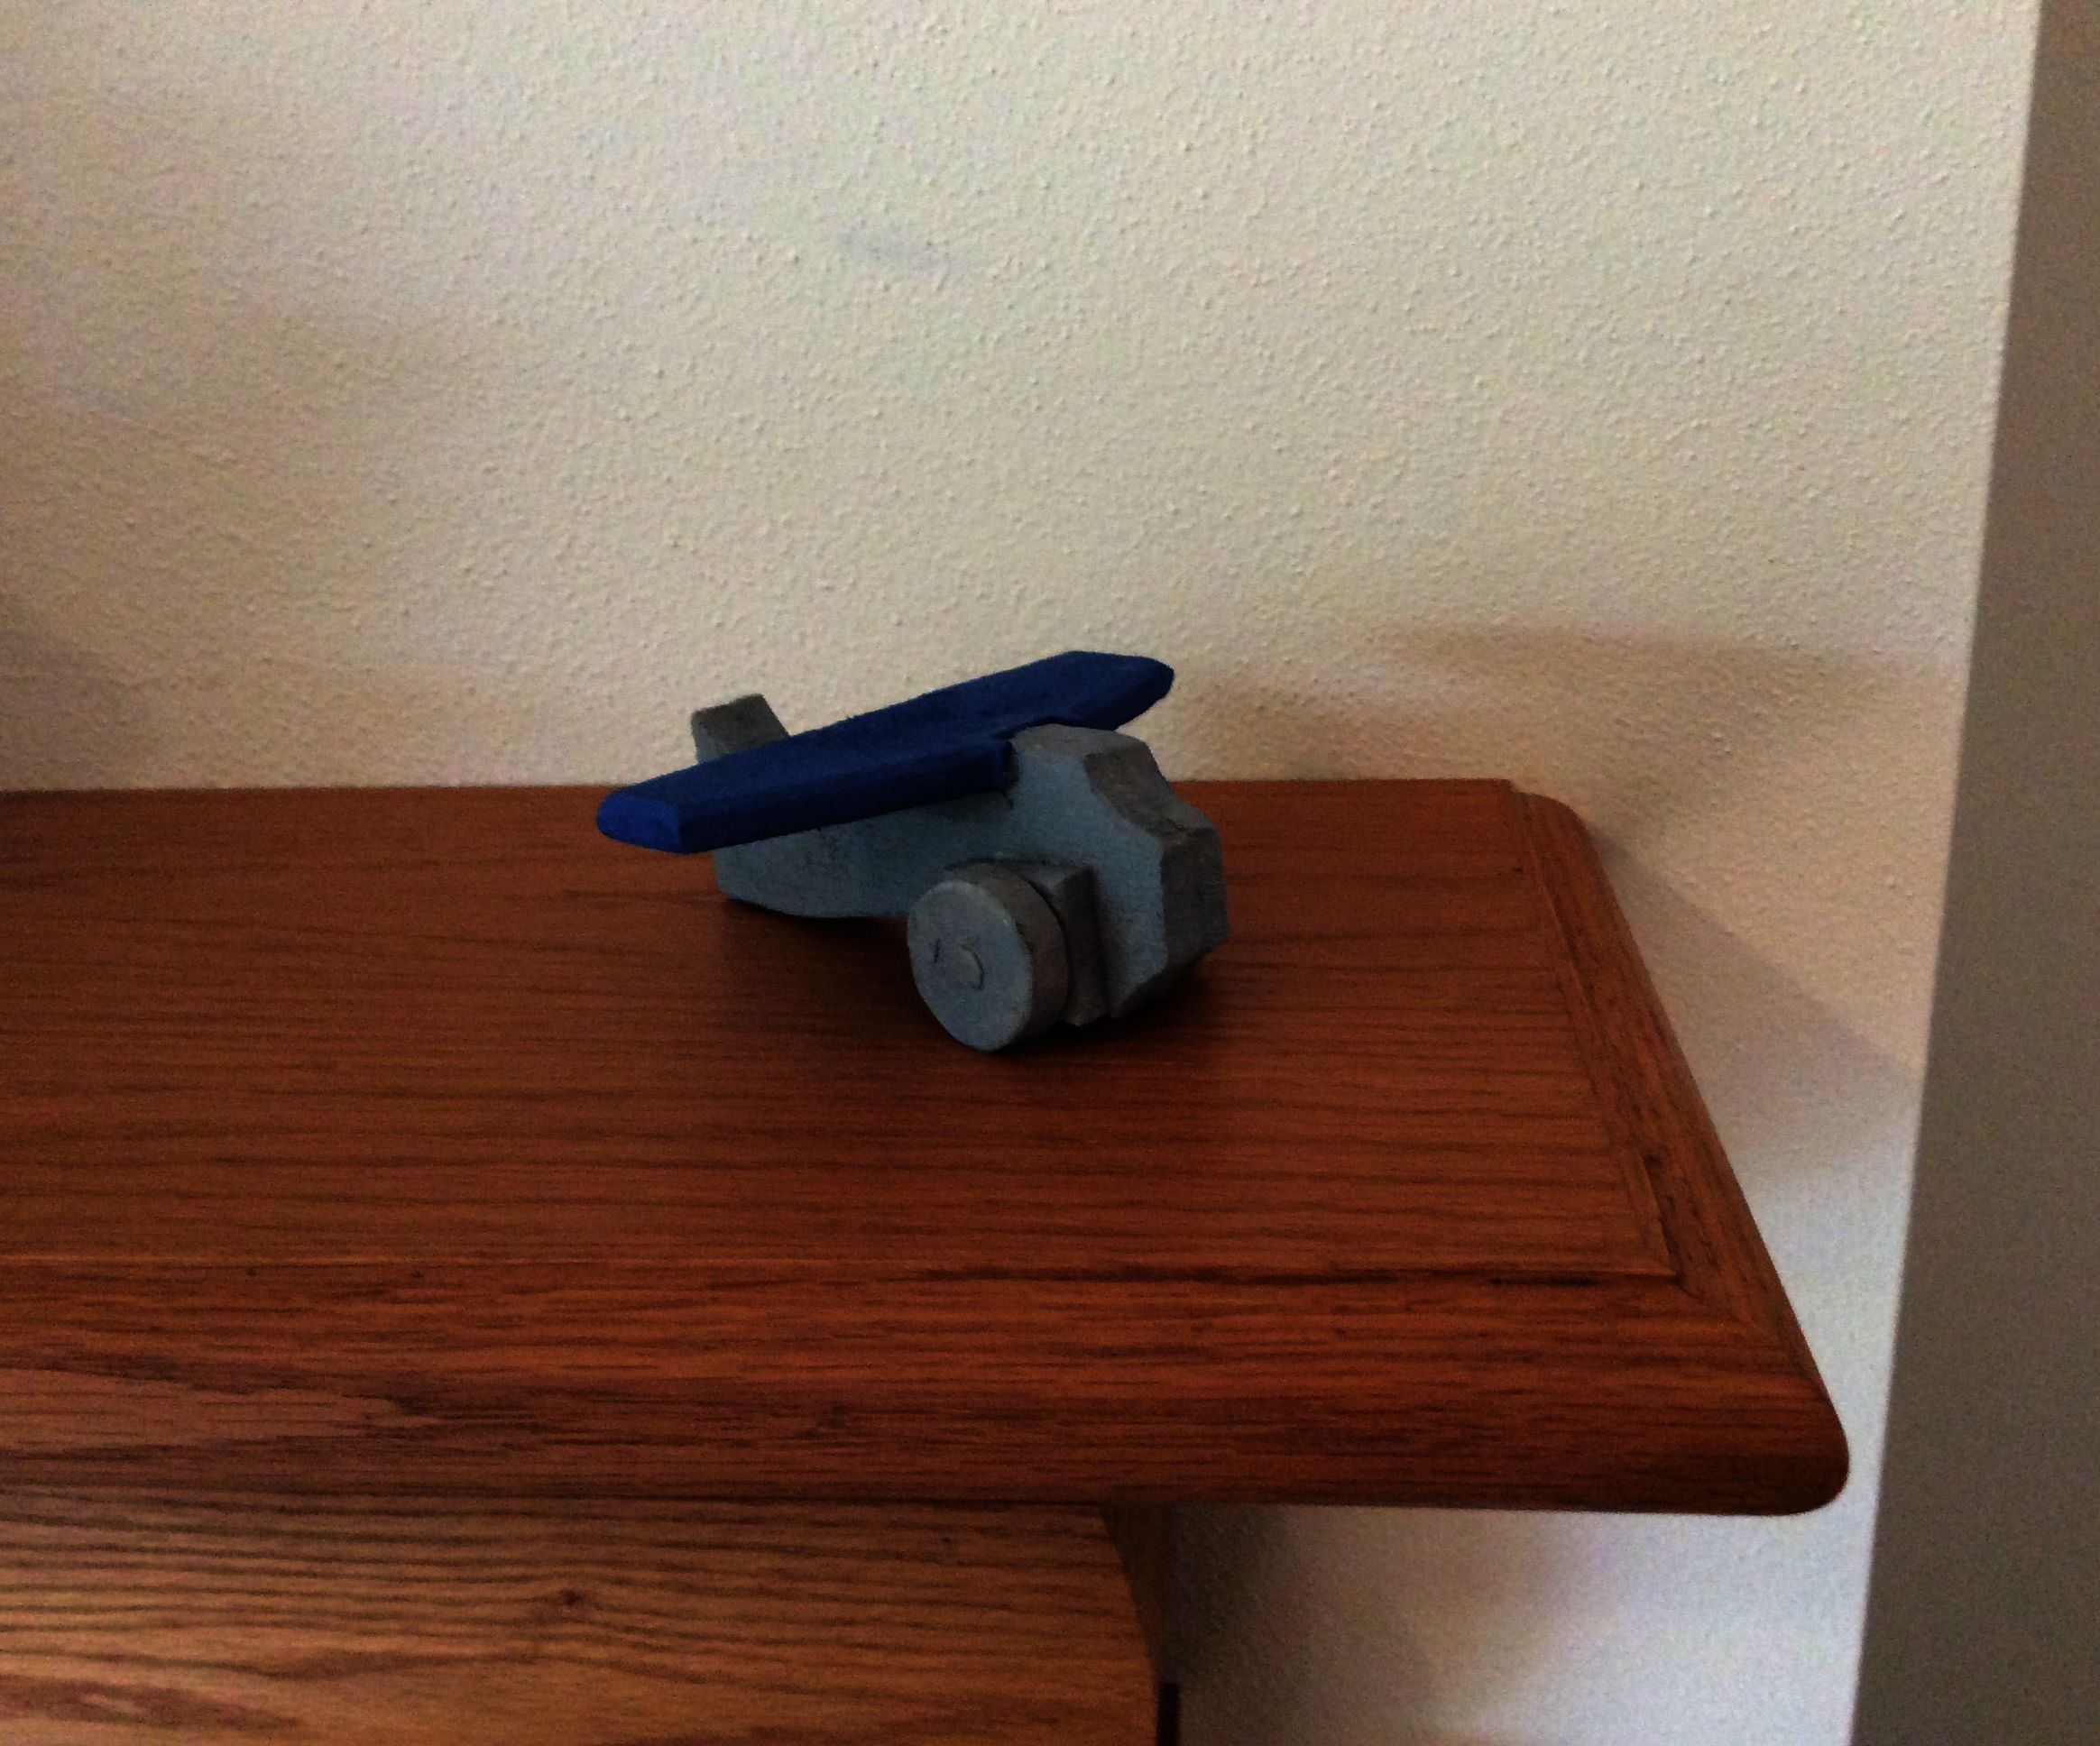 How to Make a Wooden Toy Jet